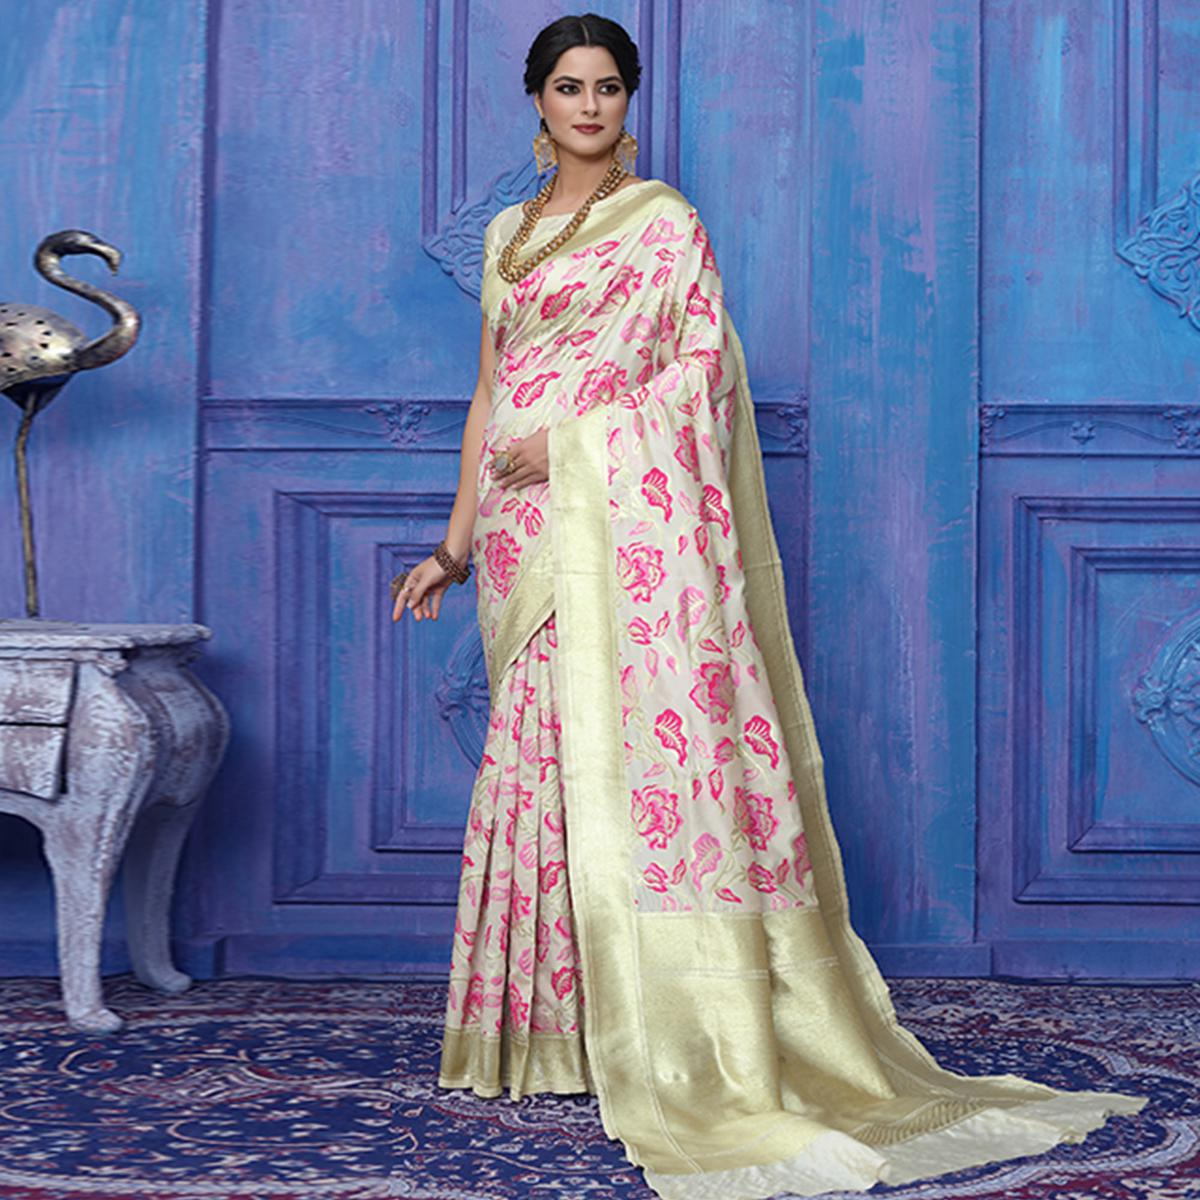 Flattering White-Pink Colored Festive Wear Printed Silk Saree